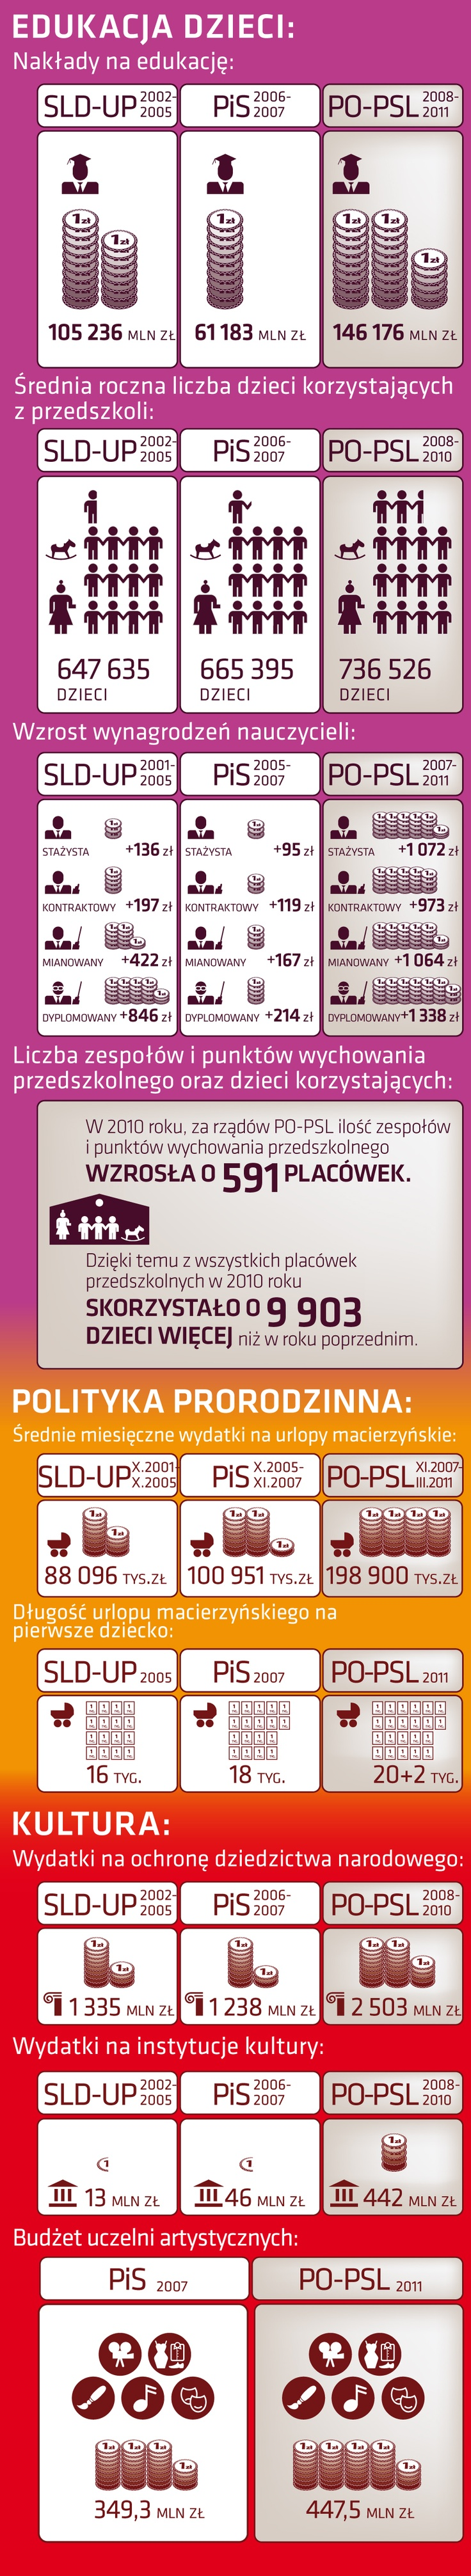 SLD-UP, PiS, PO-PSL